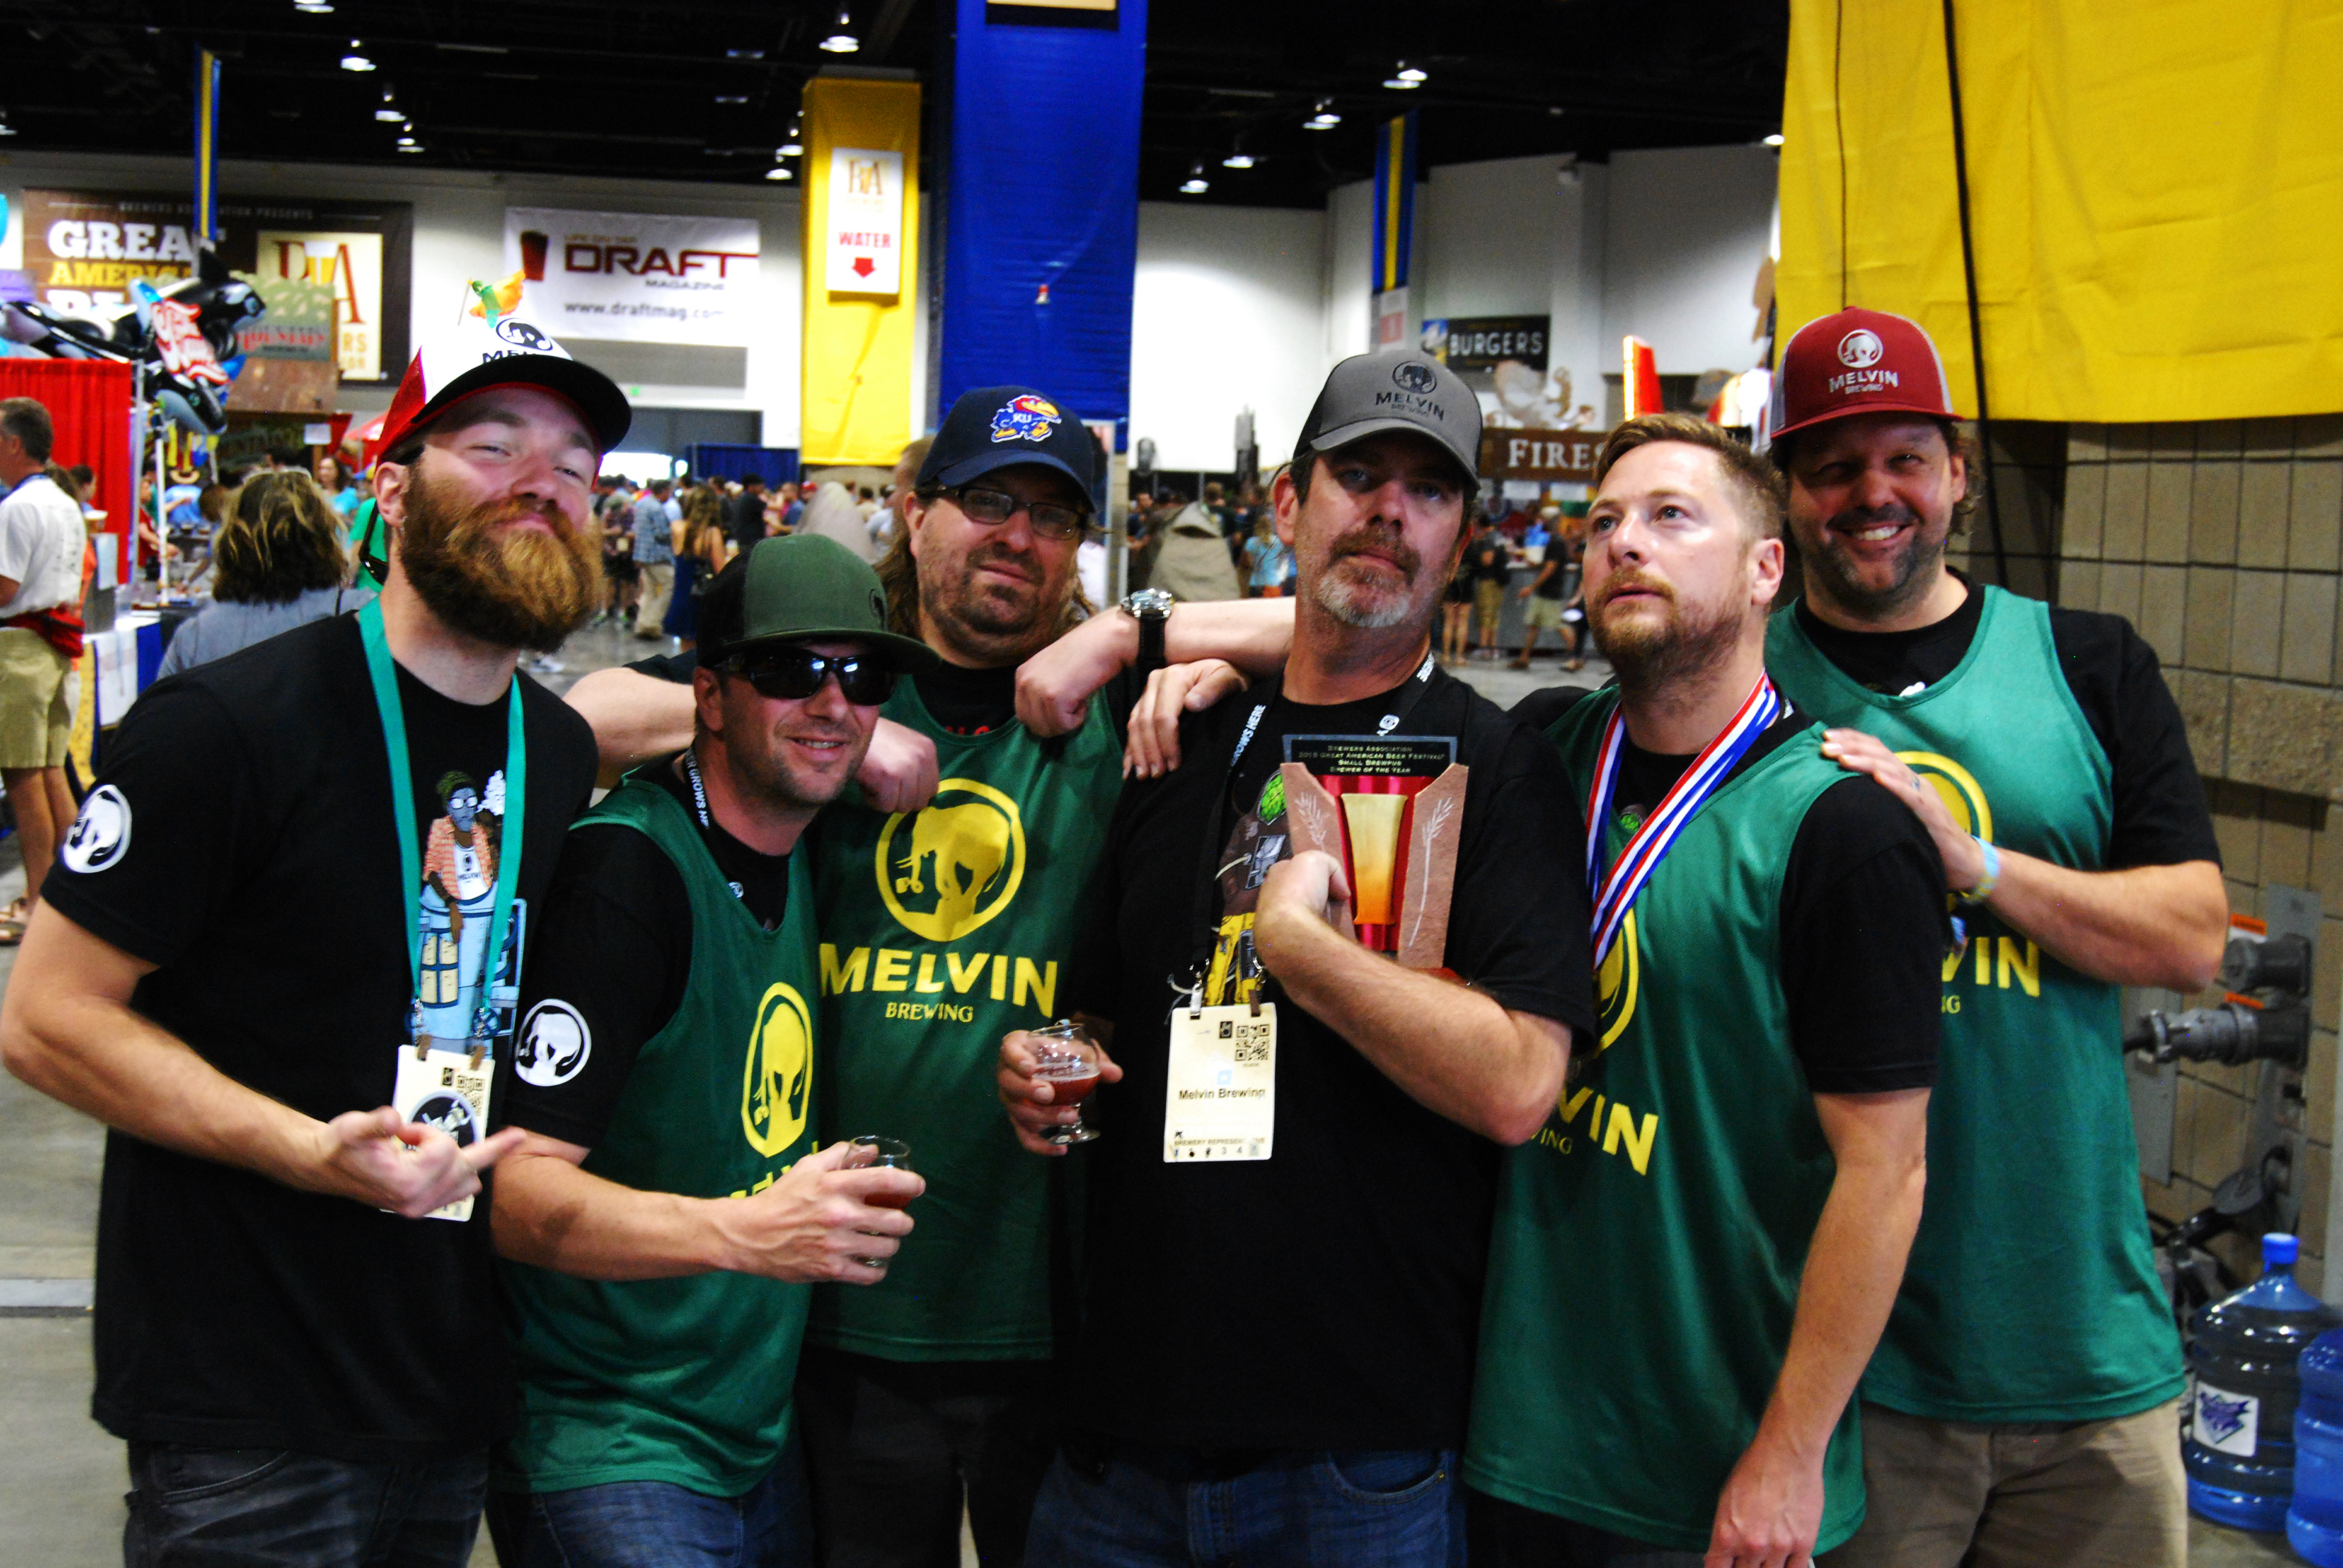 The entire Melvin crew, celebrating their win for Small Brewpub of the Year.